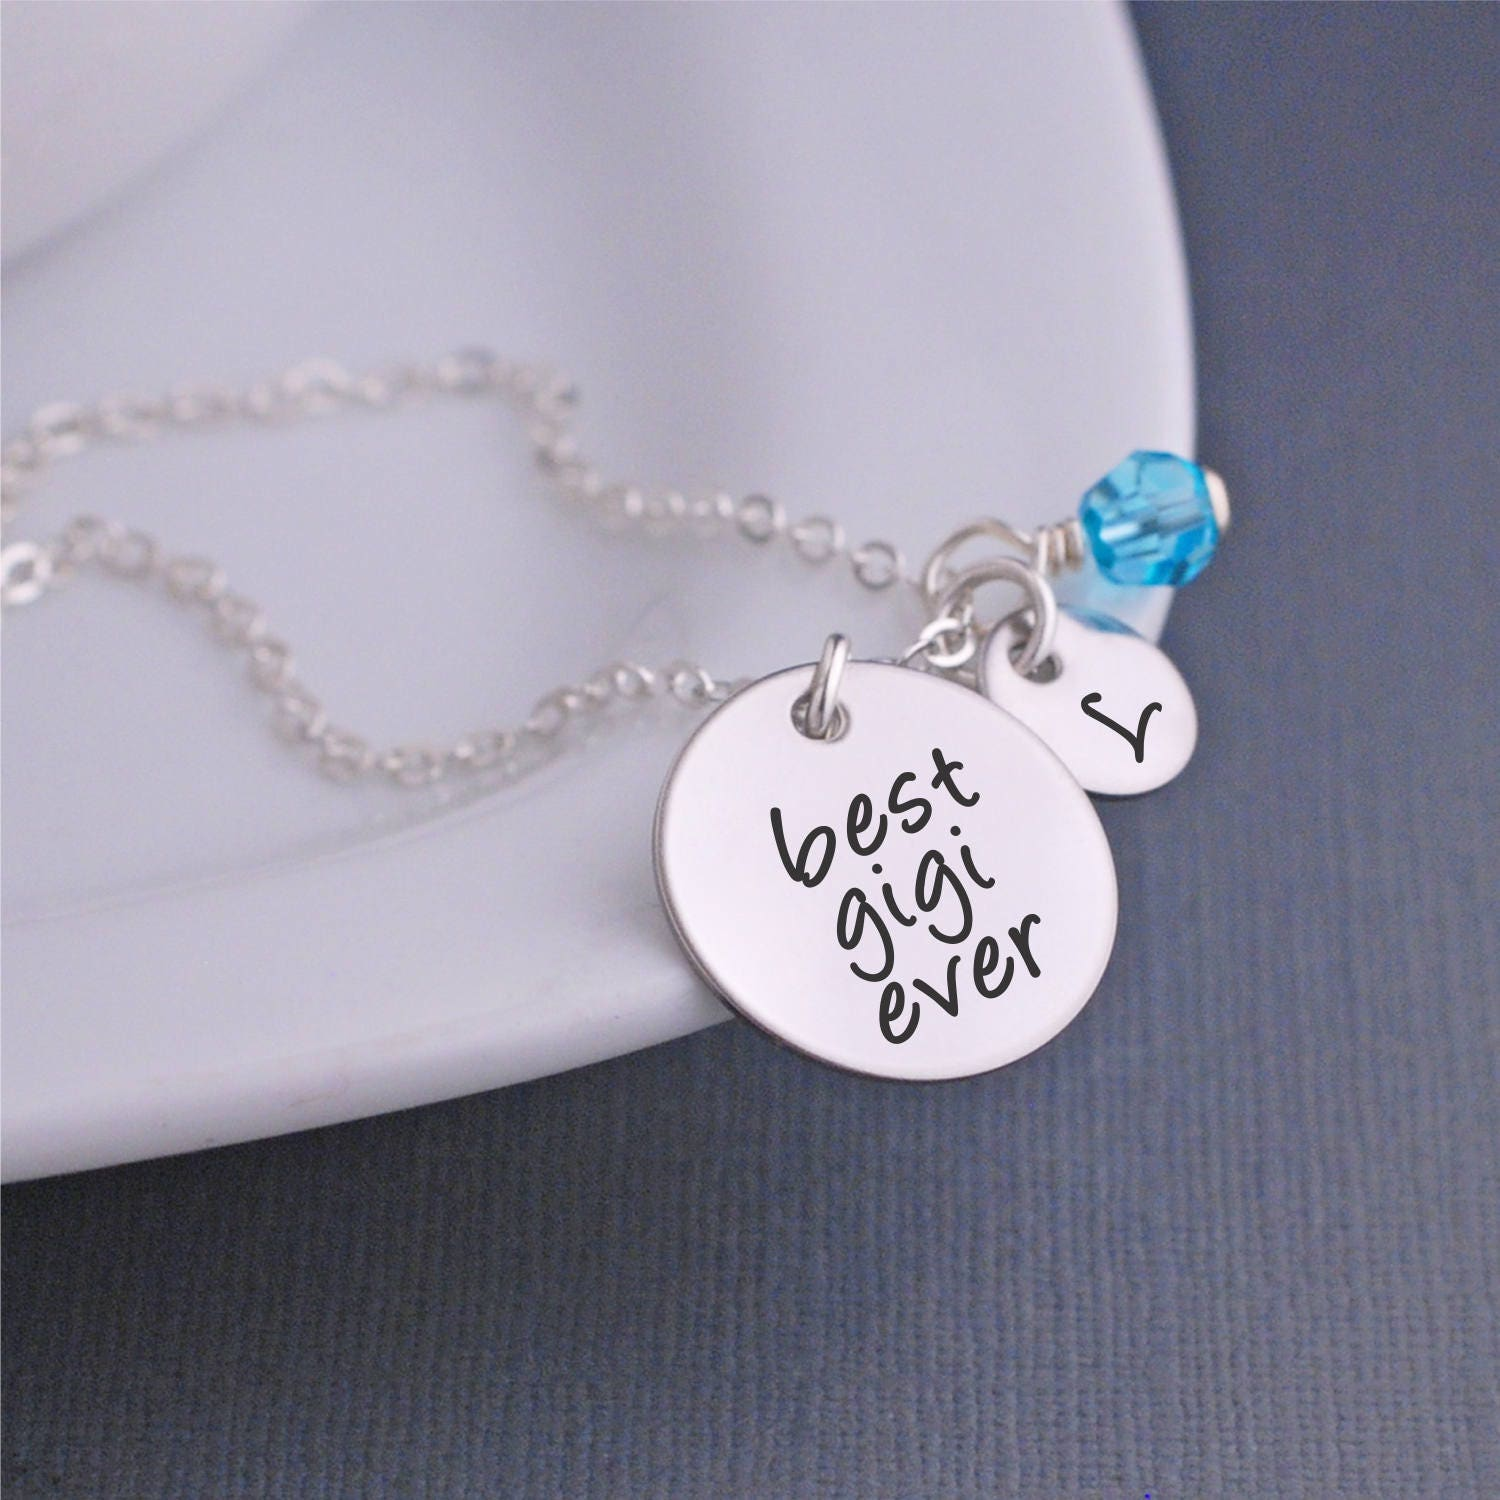 ip birthstone mother grandkid s heart personalized over keepsake gold necklace jewelry available walmart com in pendant sterling family silver